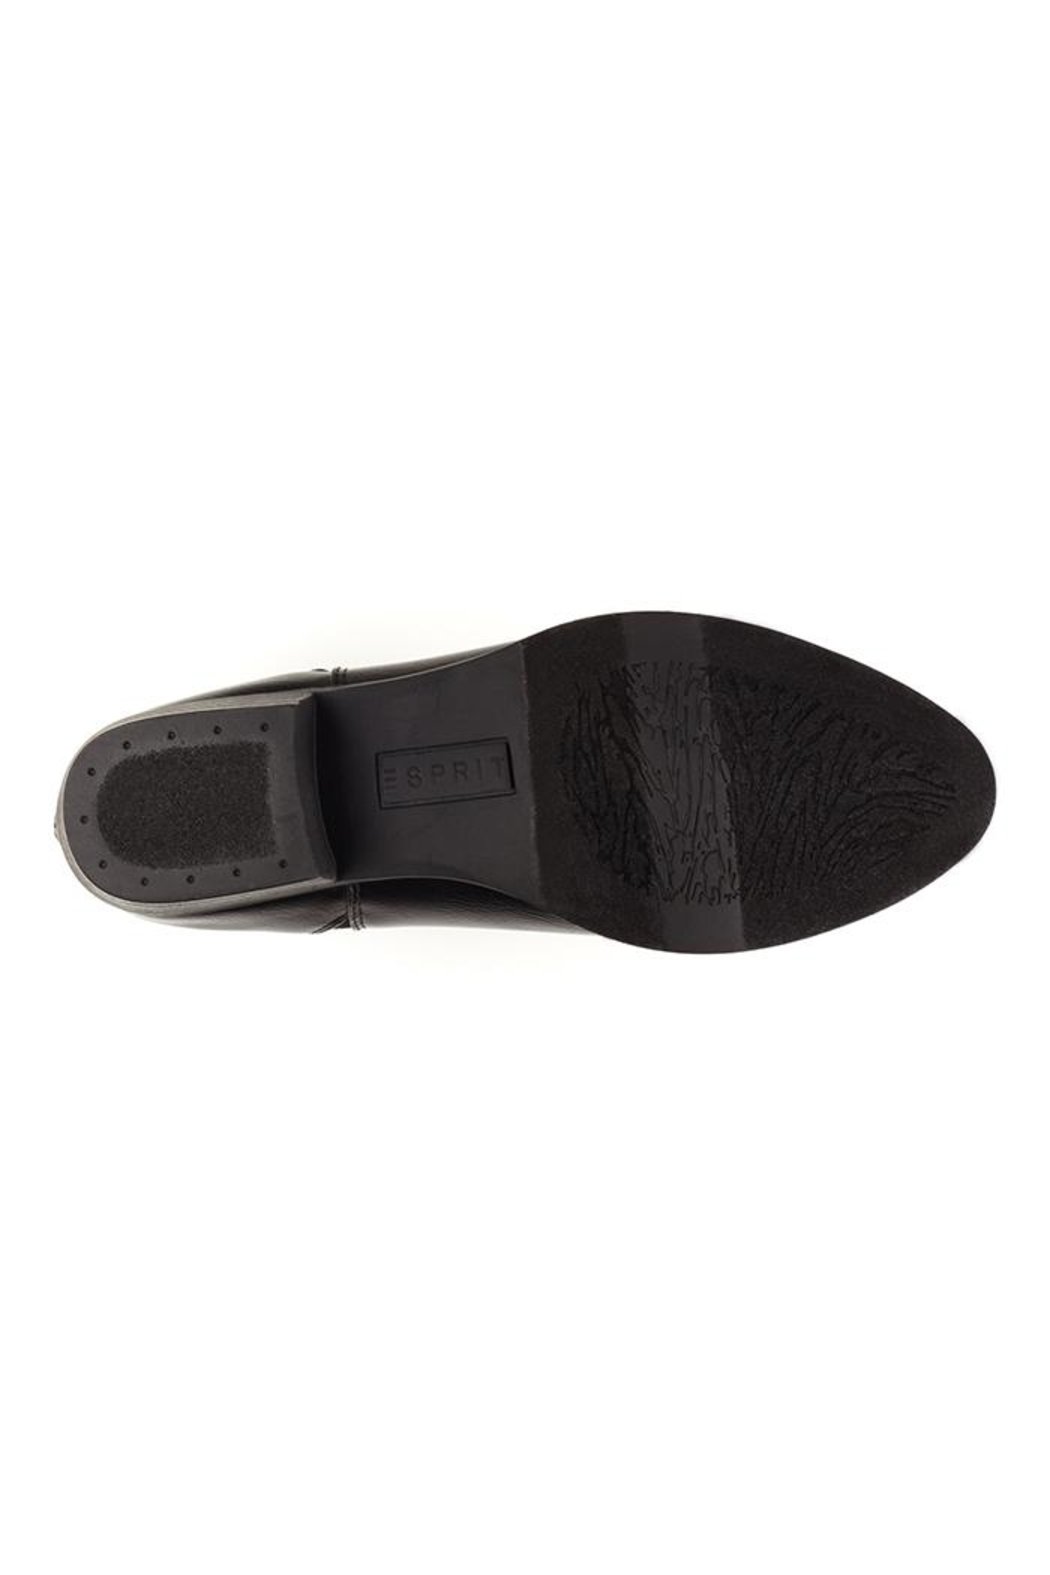 Esprit Vegan Black Booties - Back Cropped Image